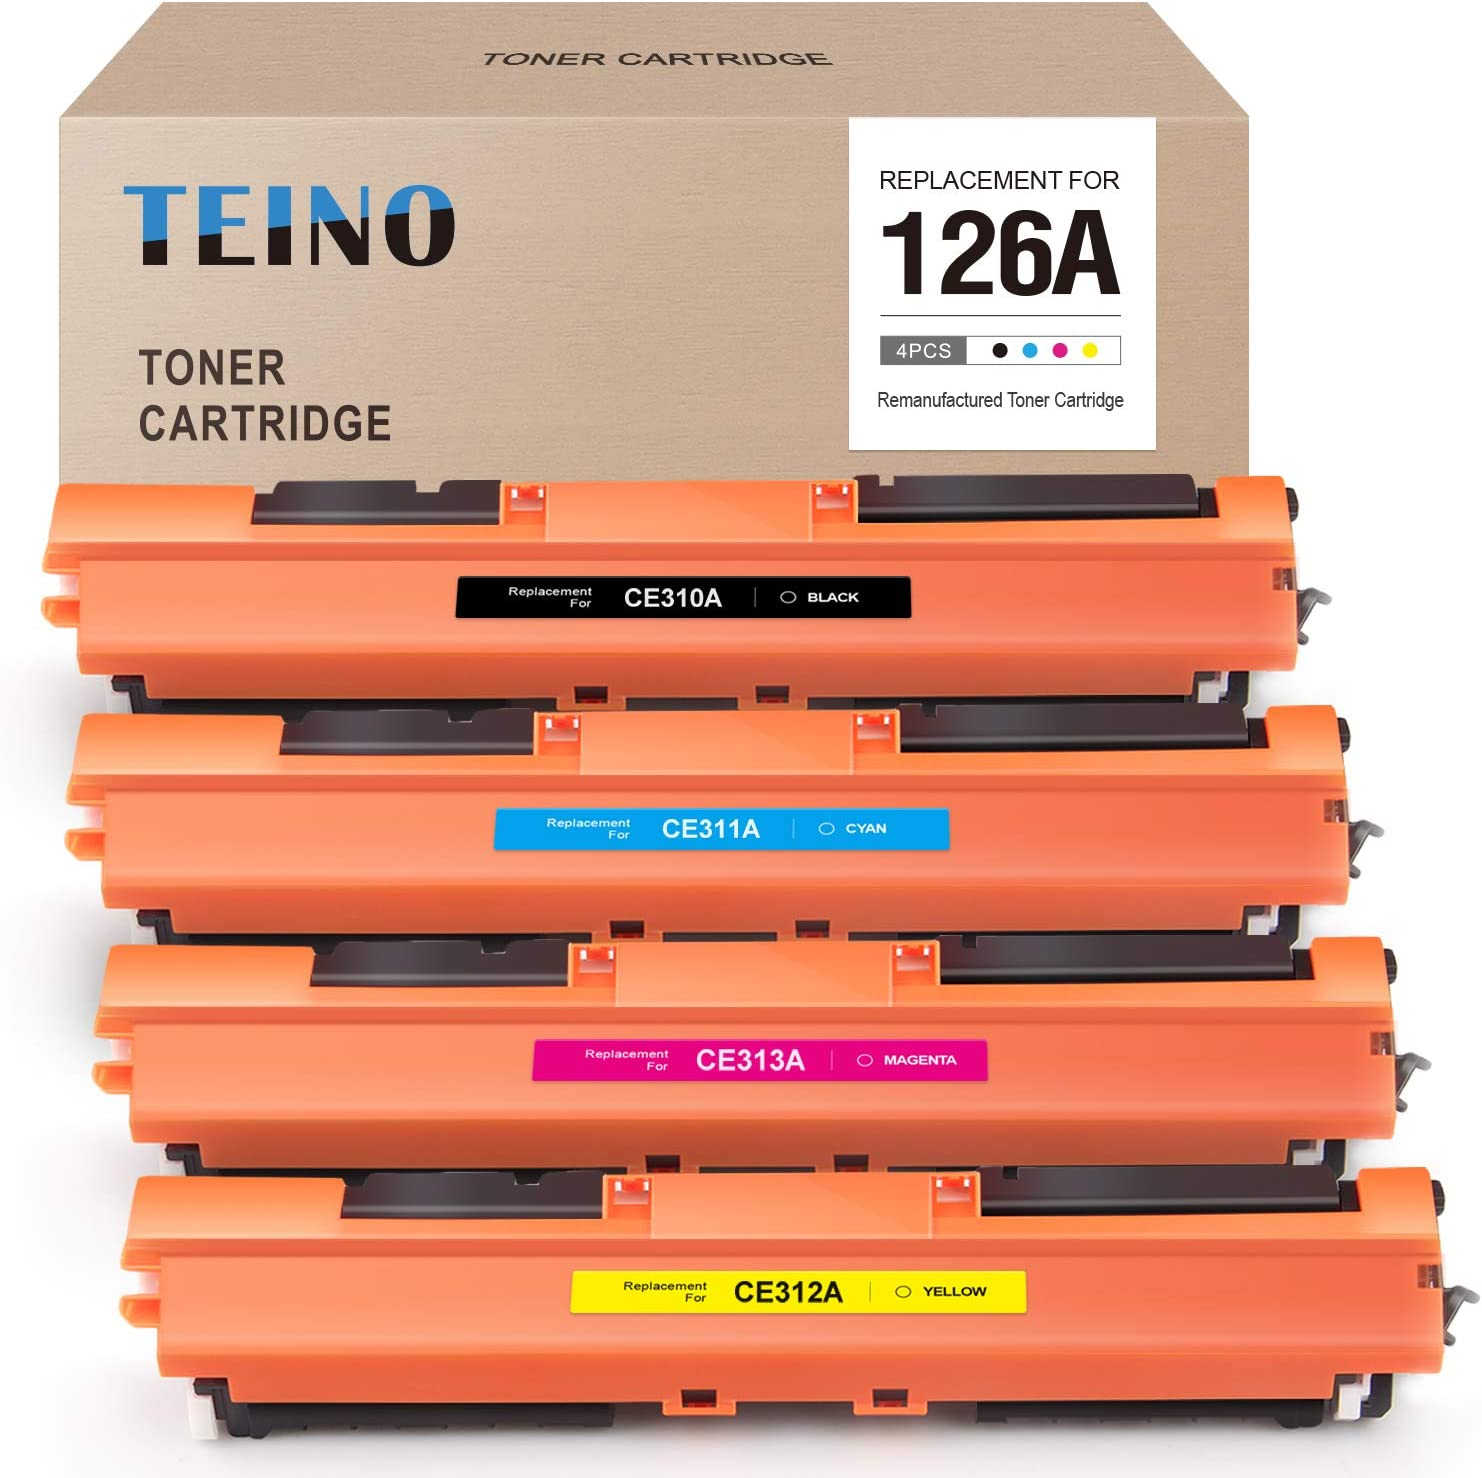 TEINO Compatible Toner Cartridge Replacement for HP 126A CE310A CE311A CE312A CE313A for Color Laserjet Pro MFP M175nw CP1025nw M275 M275NW (Black, Cyan, Magenta, Yellow, 4 Pack)